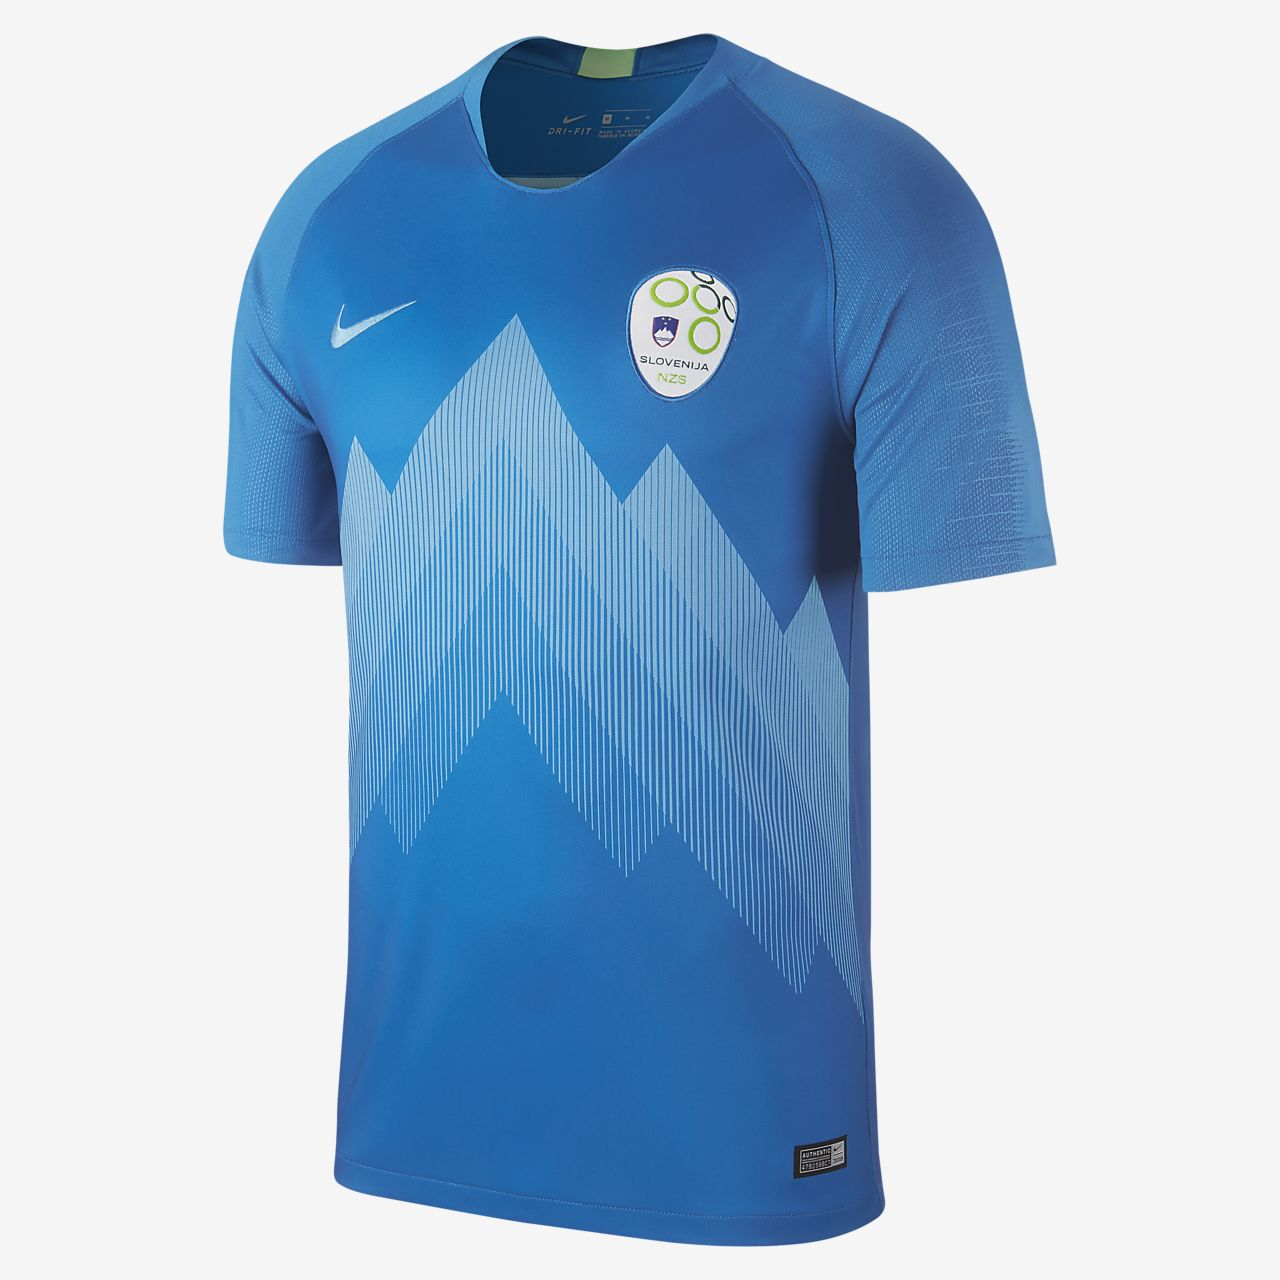 2018 Slovenia Stadium Away Men's Football Shirt